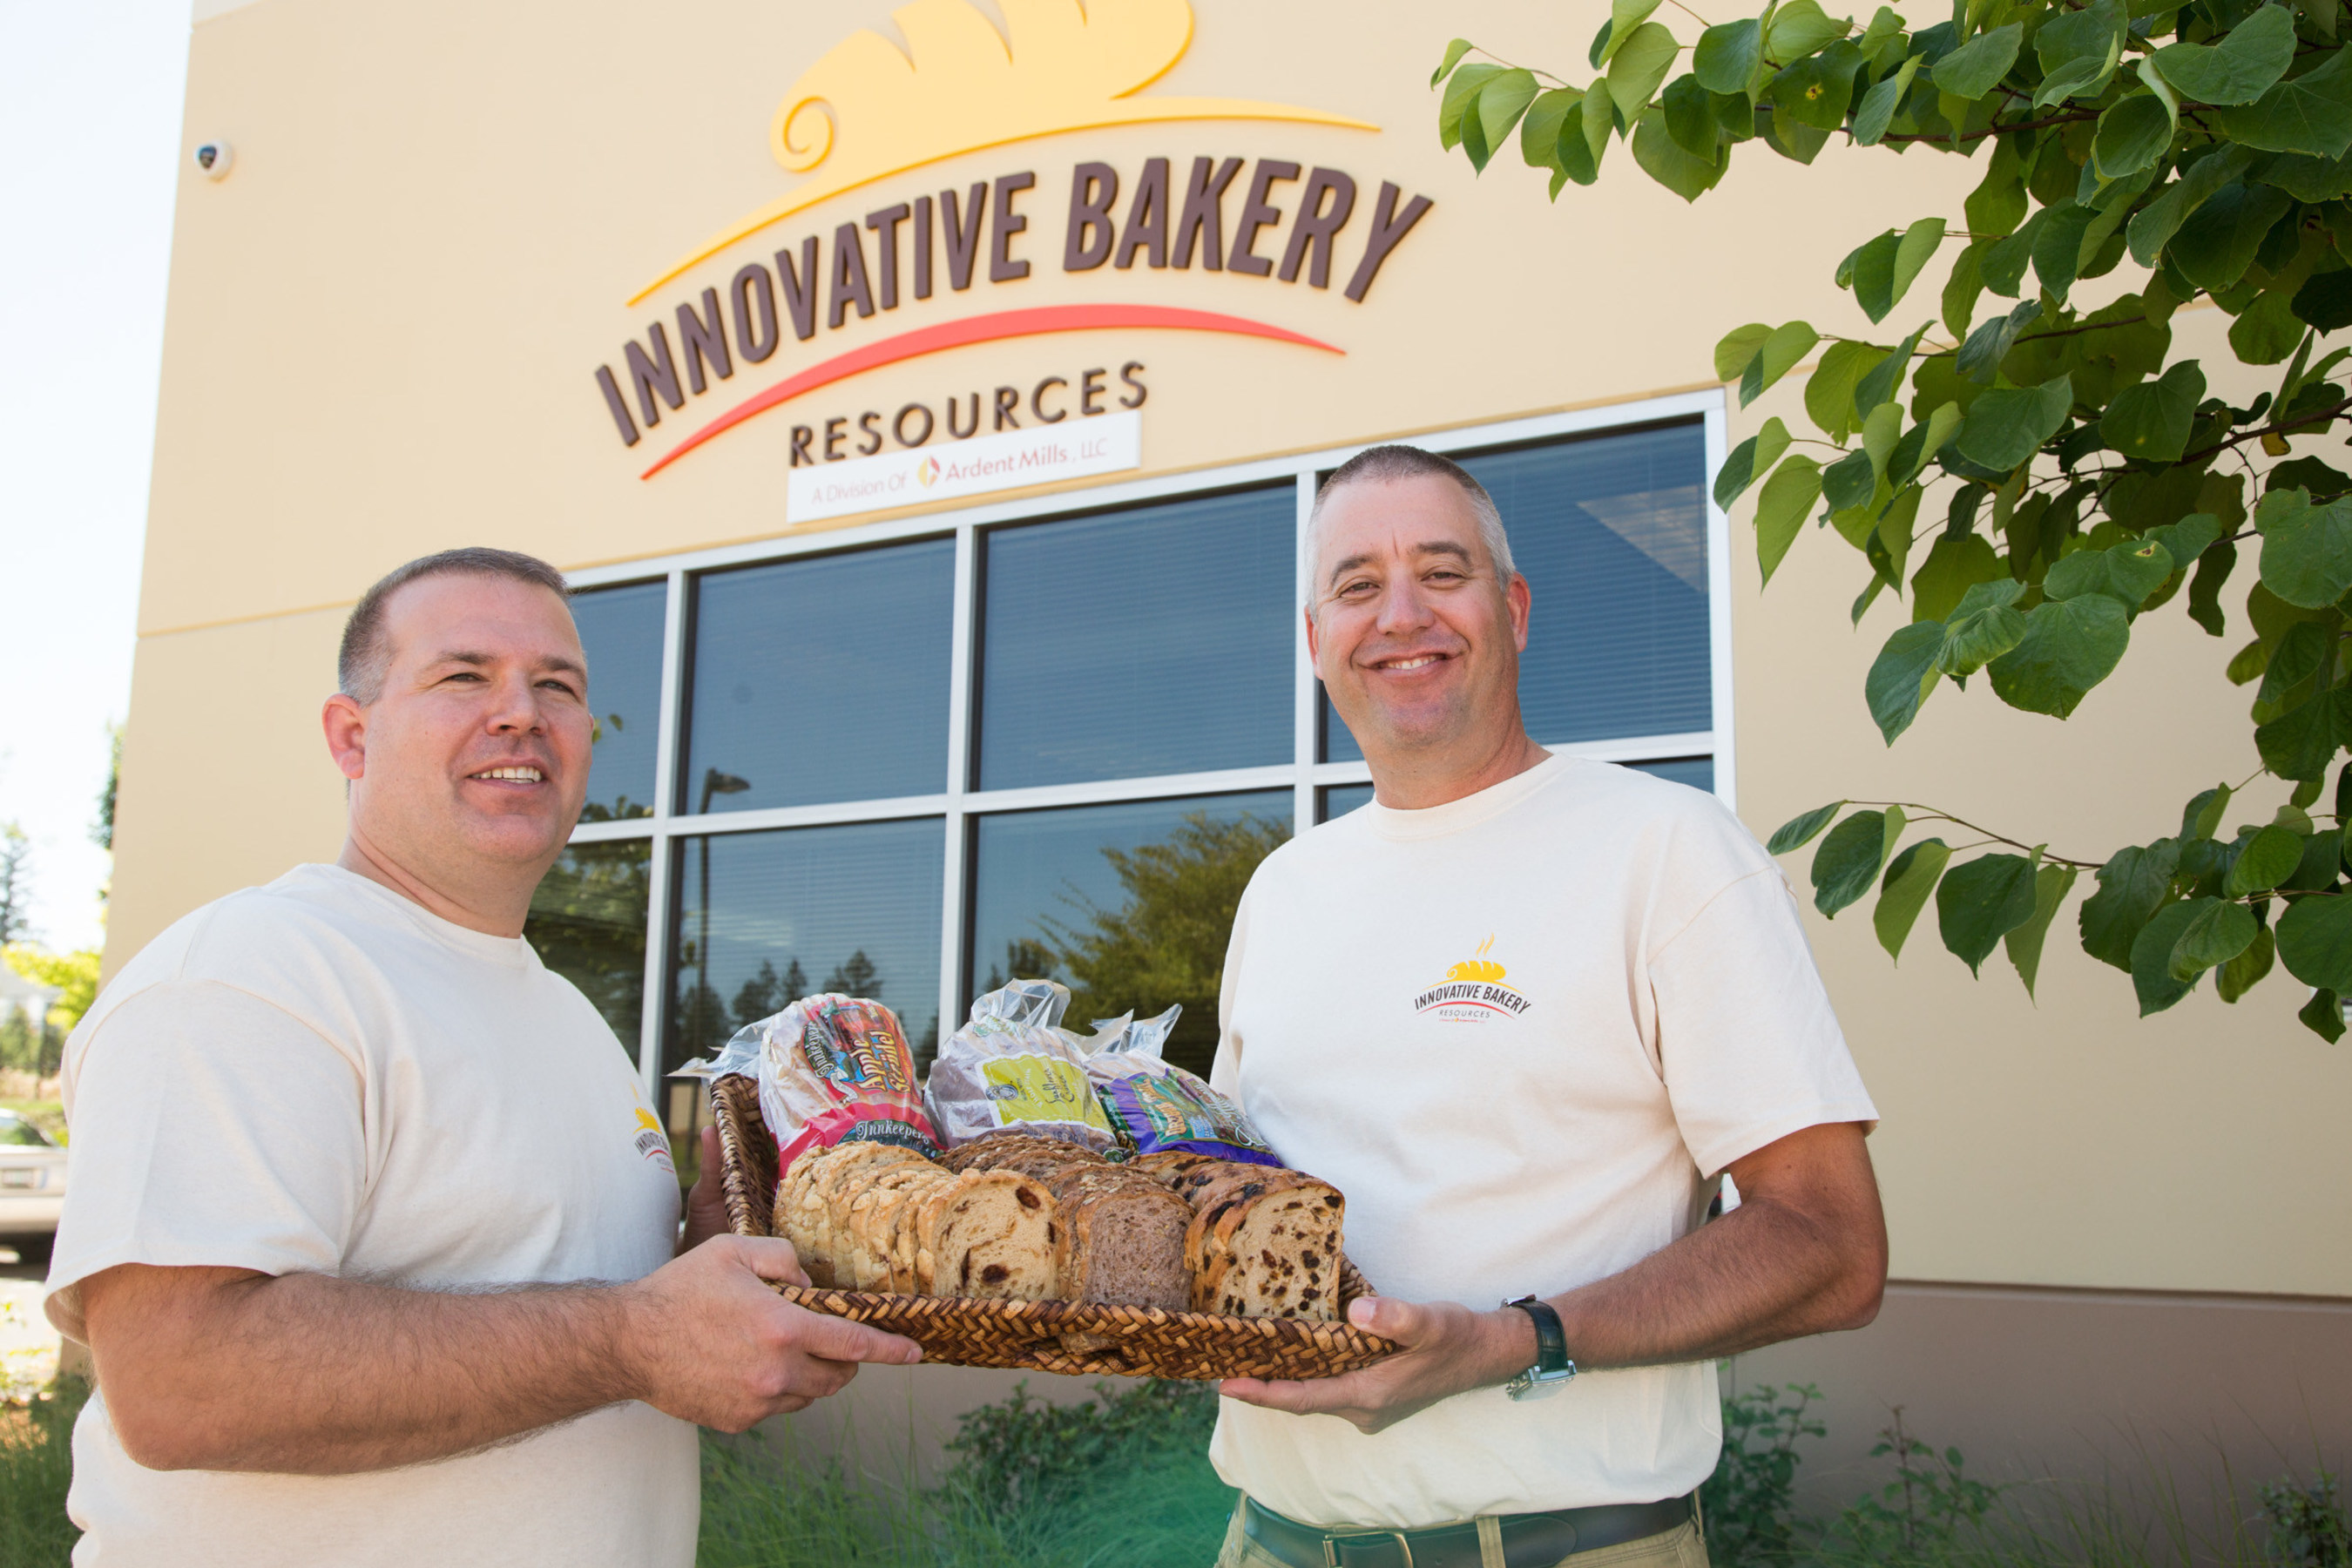 "Ardent Mills' Innovative Bakery Resources (IBR) Manager Scott Dillingham, [pictured left], states, ""Our facility and our specialty mix facility in Arlington, Oregon are a real 'one-two punch' allowing major food customers to use our high-quality ingredients, customizable lines and custom blends to support regional pilots and national product launches. Each day we get to bring delicious new food ideas to life.""Ardent Mills Chief Operating Officer, Bill Stoufer, [pictured right] notes, ""IBR is part think tank and artisan bakery, allowing us to partner with food manufacturers as well as retail and foodservice enterprises, to bring complex, baked goods to the consumer market."""